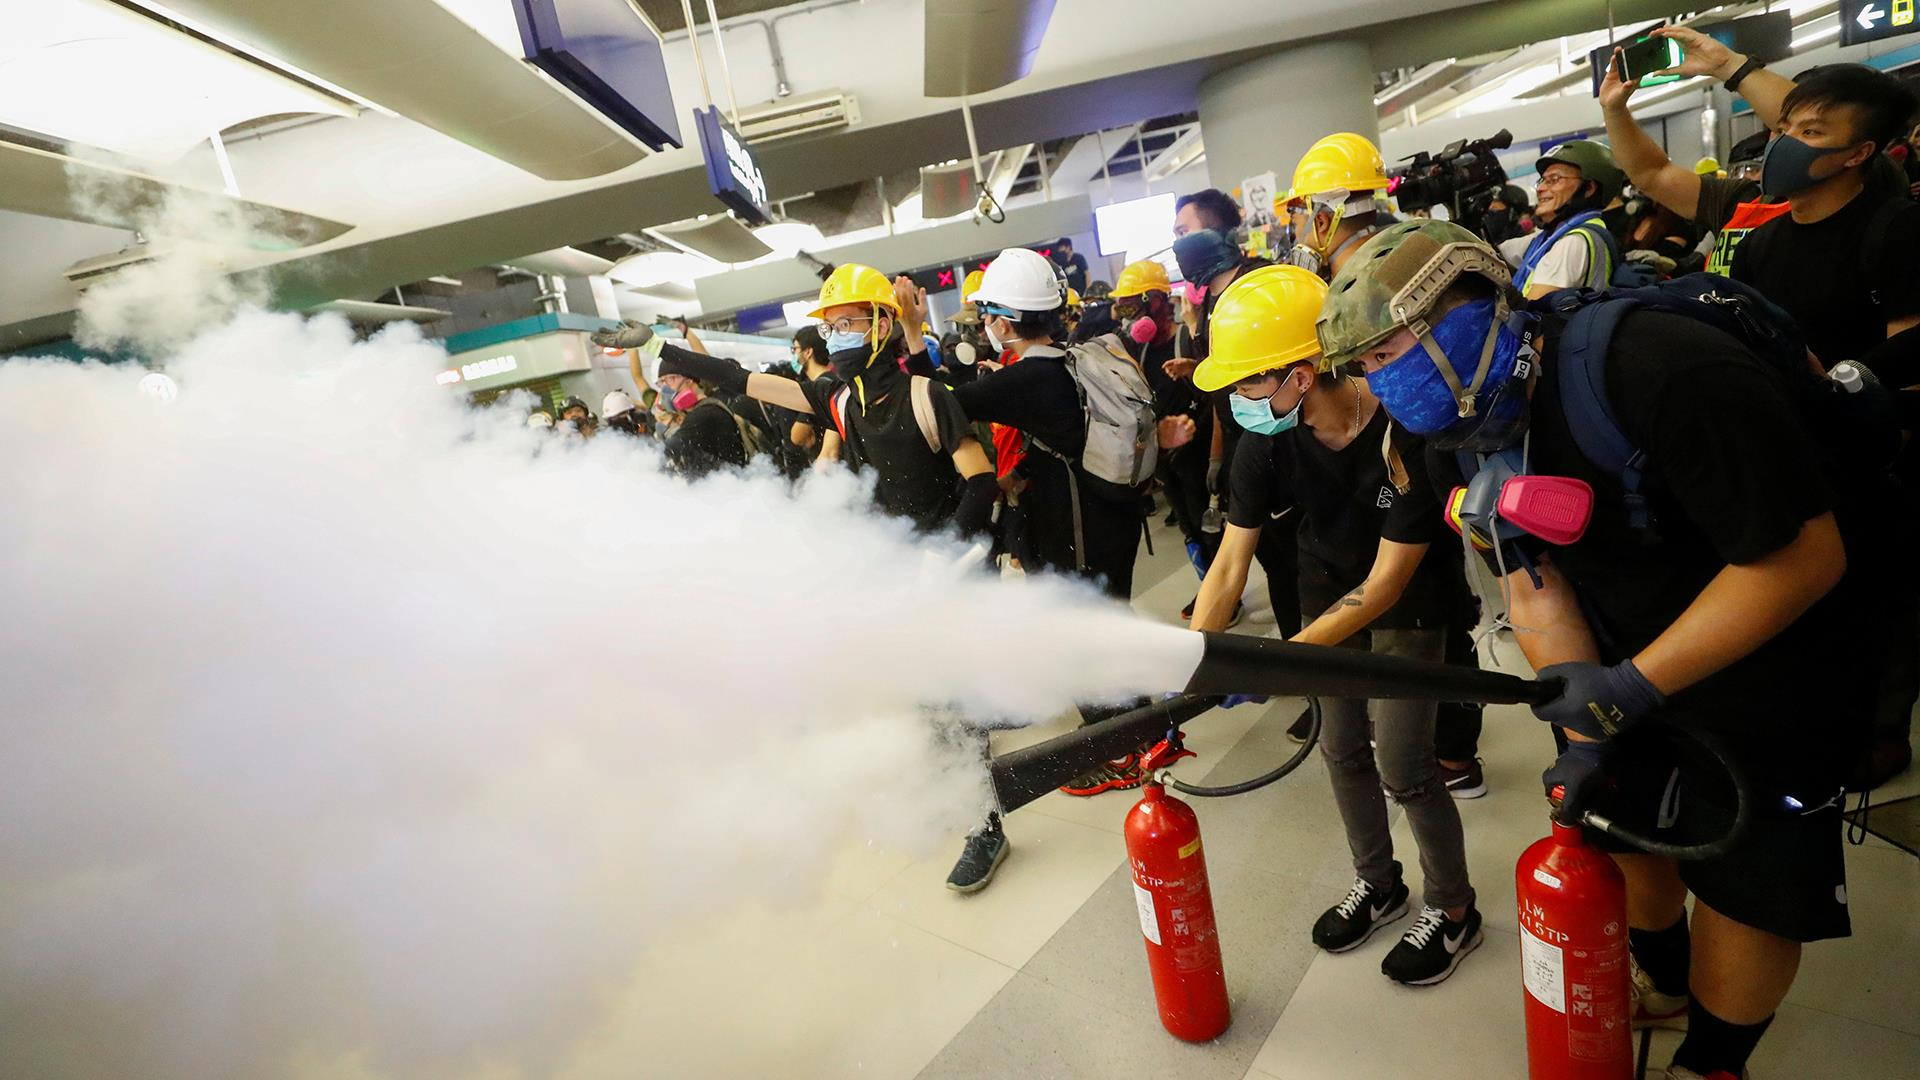 Hong Kong protest suddenly turns chaotic